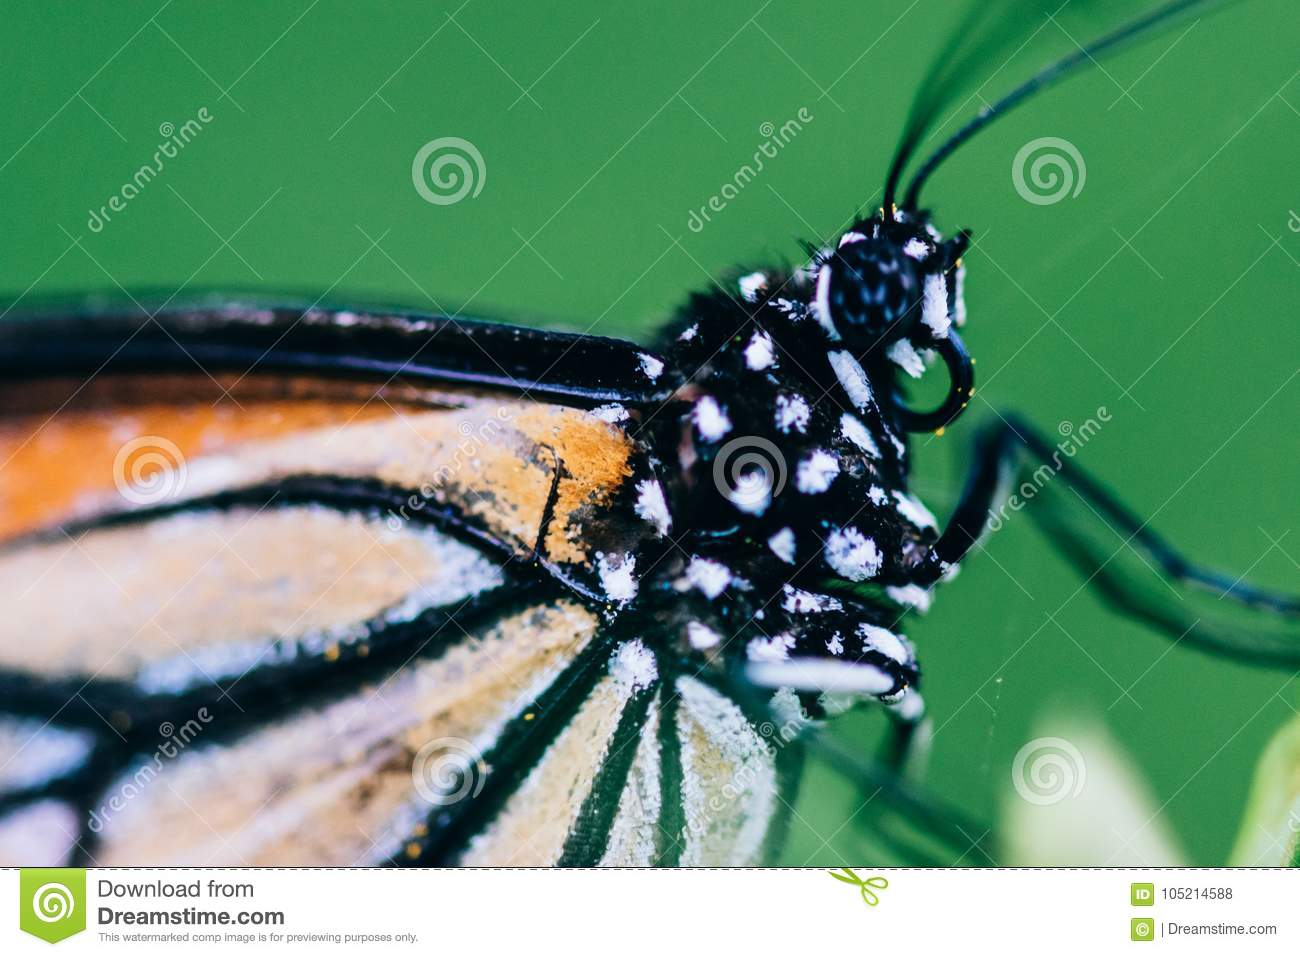 Pleasing look of beautiful butterfly close-up shot